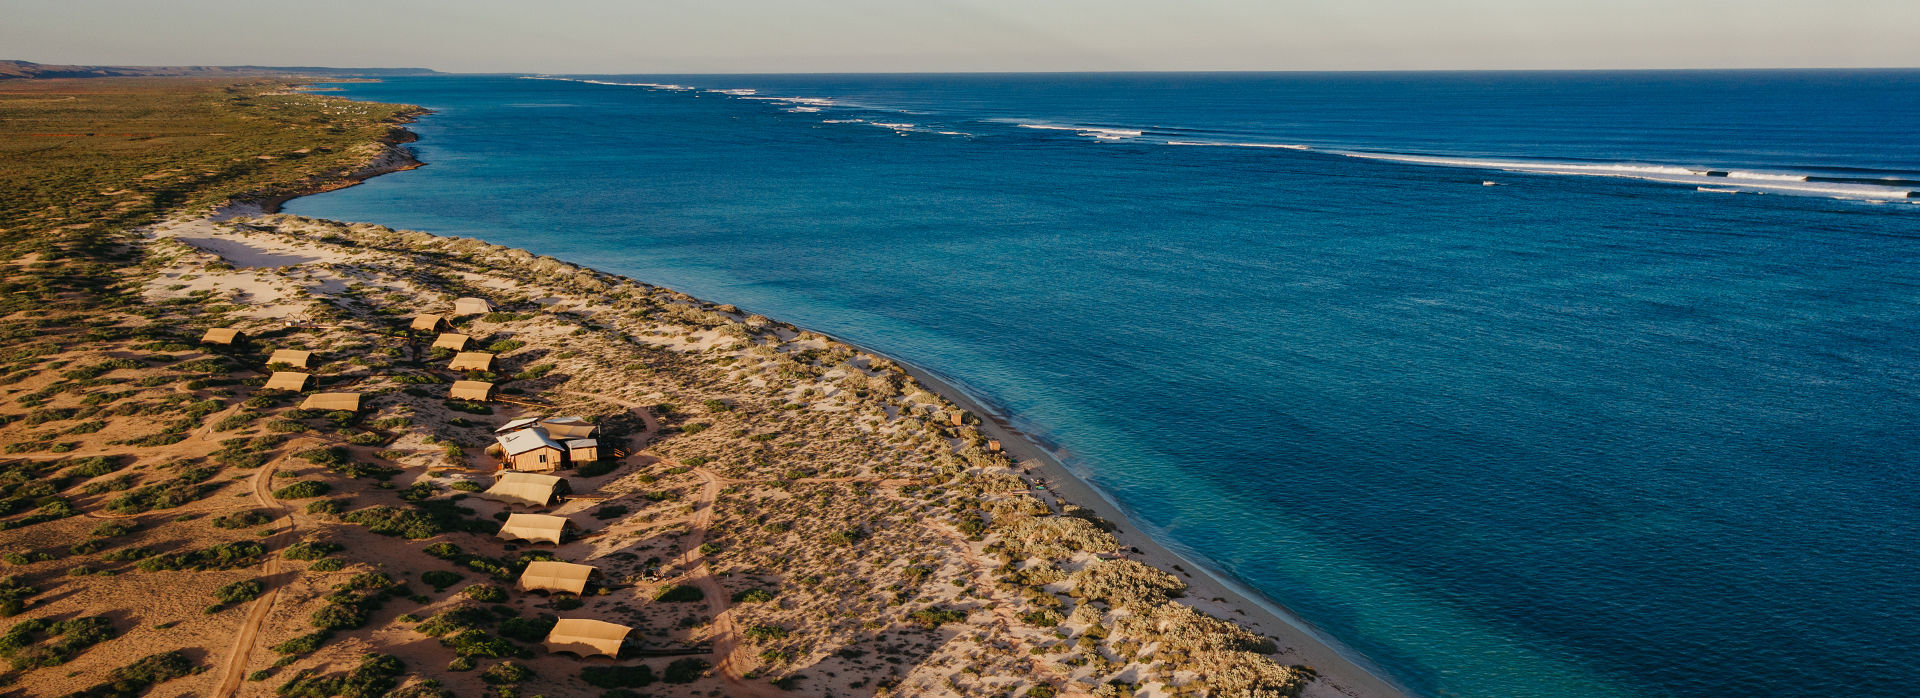 JBD SS Aerial Drone camp beach ningaloo reef agent hero0